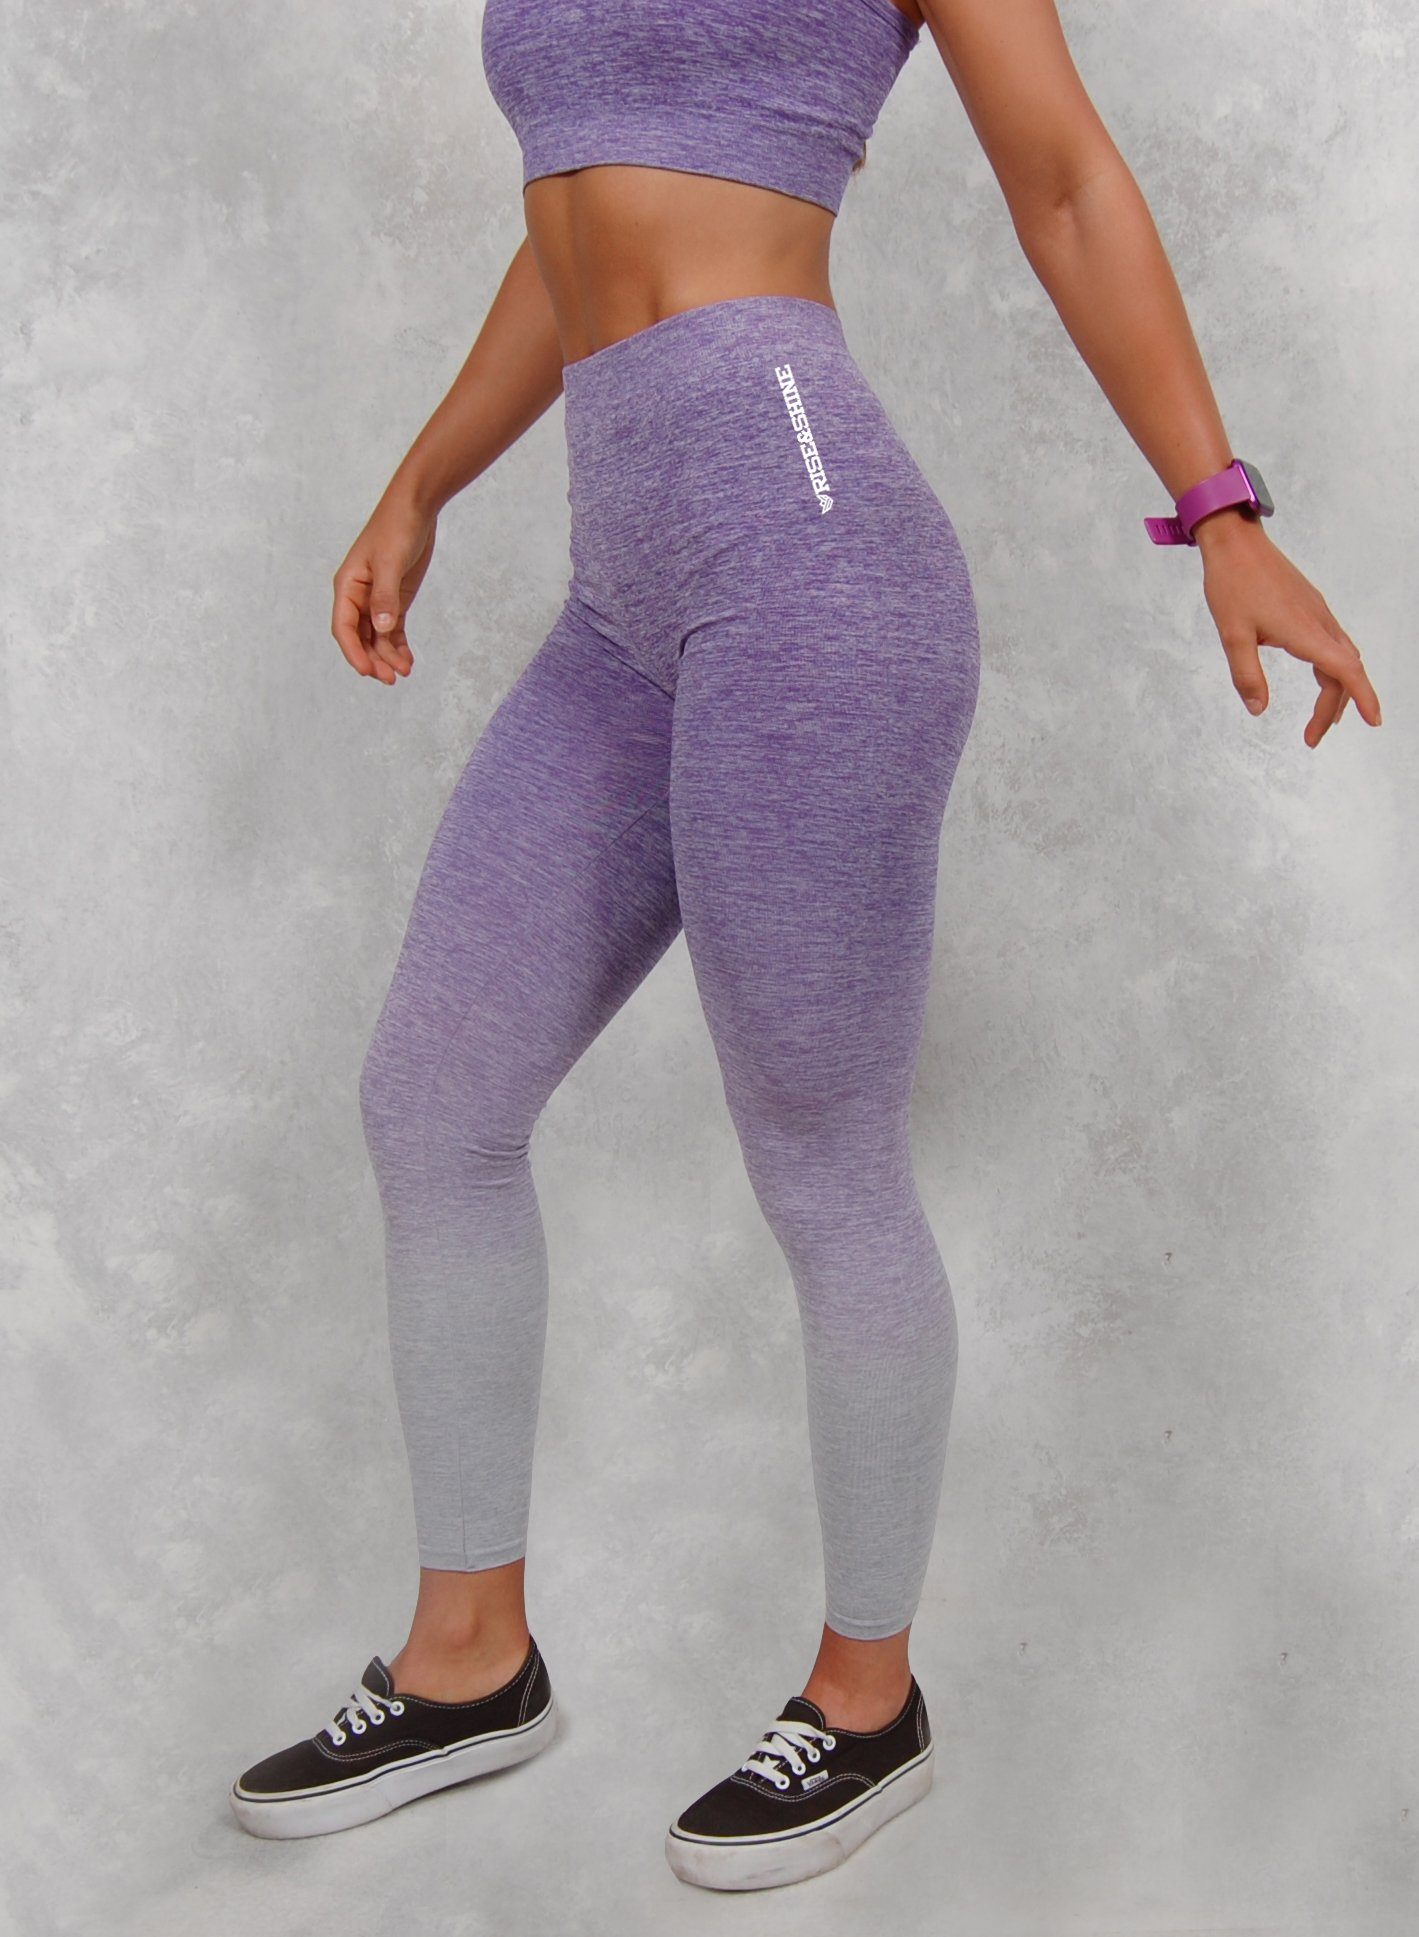 Mallas Eclipse Sin Costuras (Púrpura) Mallas Chica Rise&Shine Mindbody Industries XXS/XS